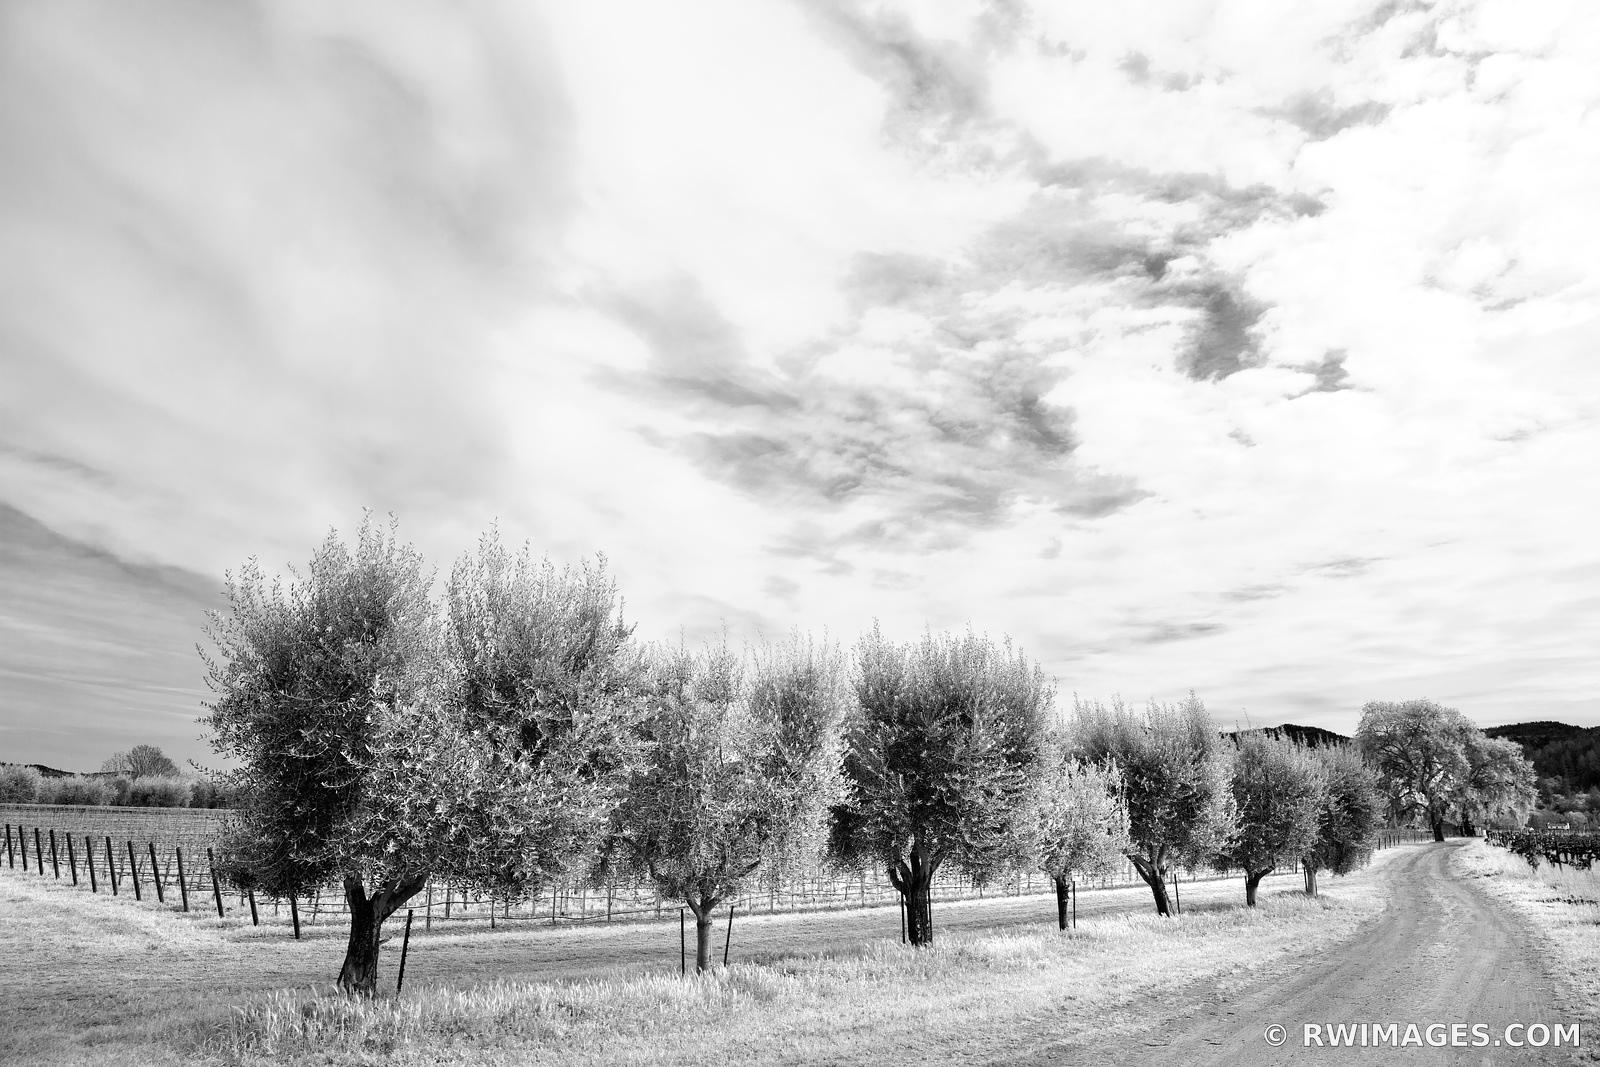 OAK TREES VINEYARD AND A COUNTRY ROAD NAPA VALLEY BLACK AND WHITE